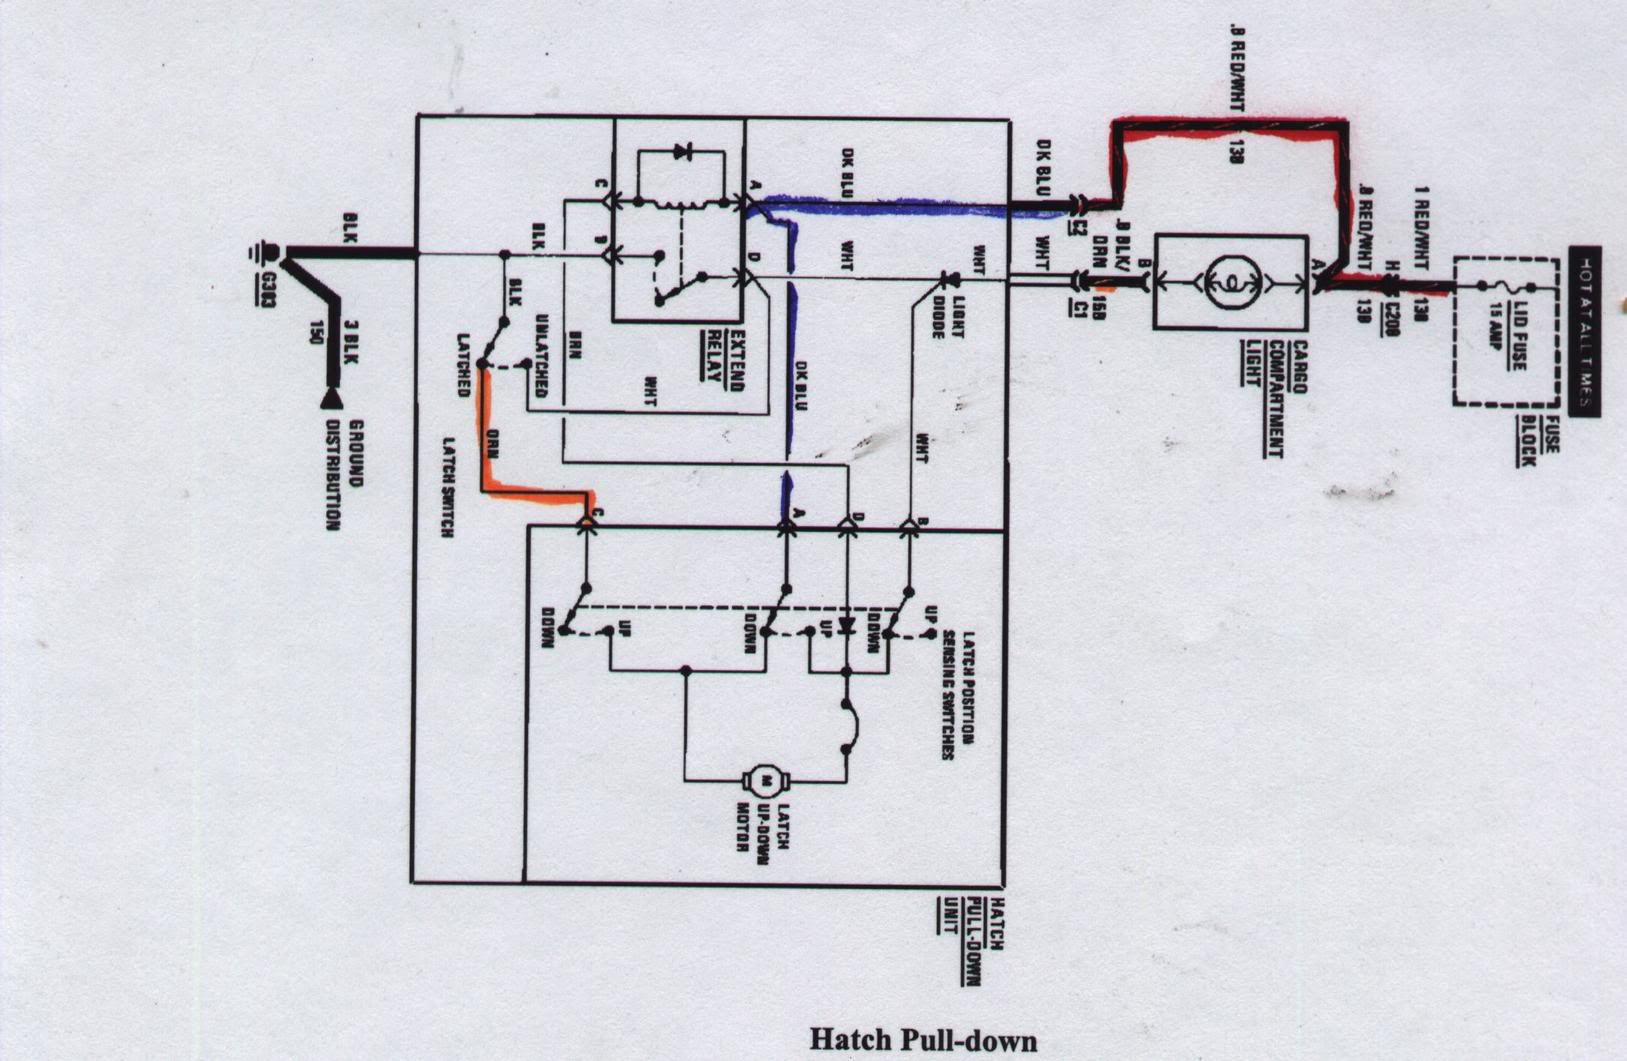 How To Diagnose You Hatch Pull Down Issue